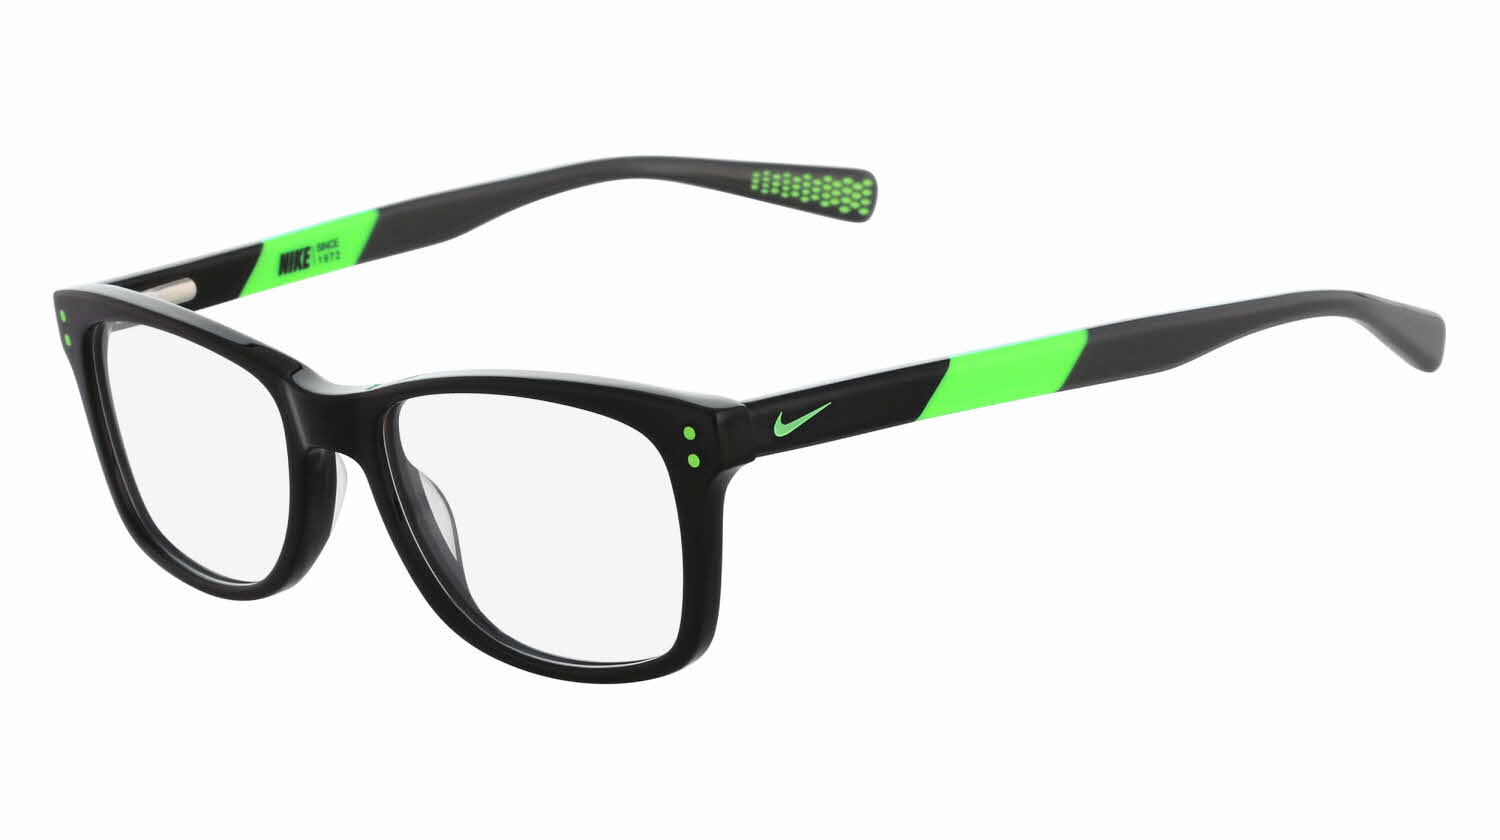 Nike Kids 5538 - Children's Eyeglasses